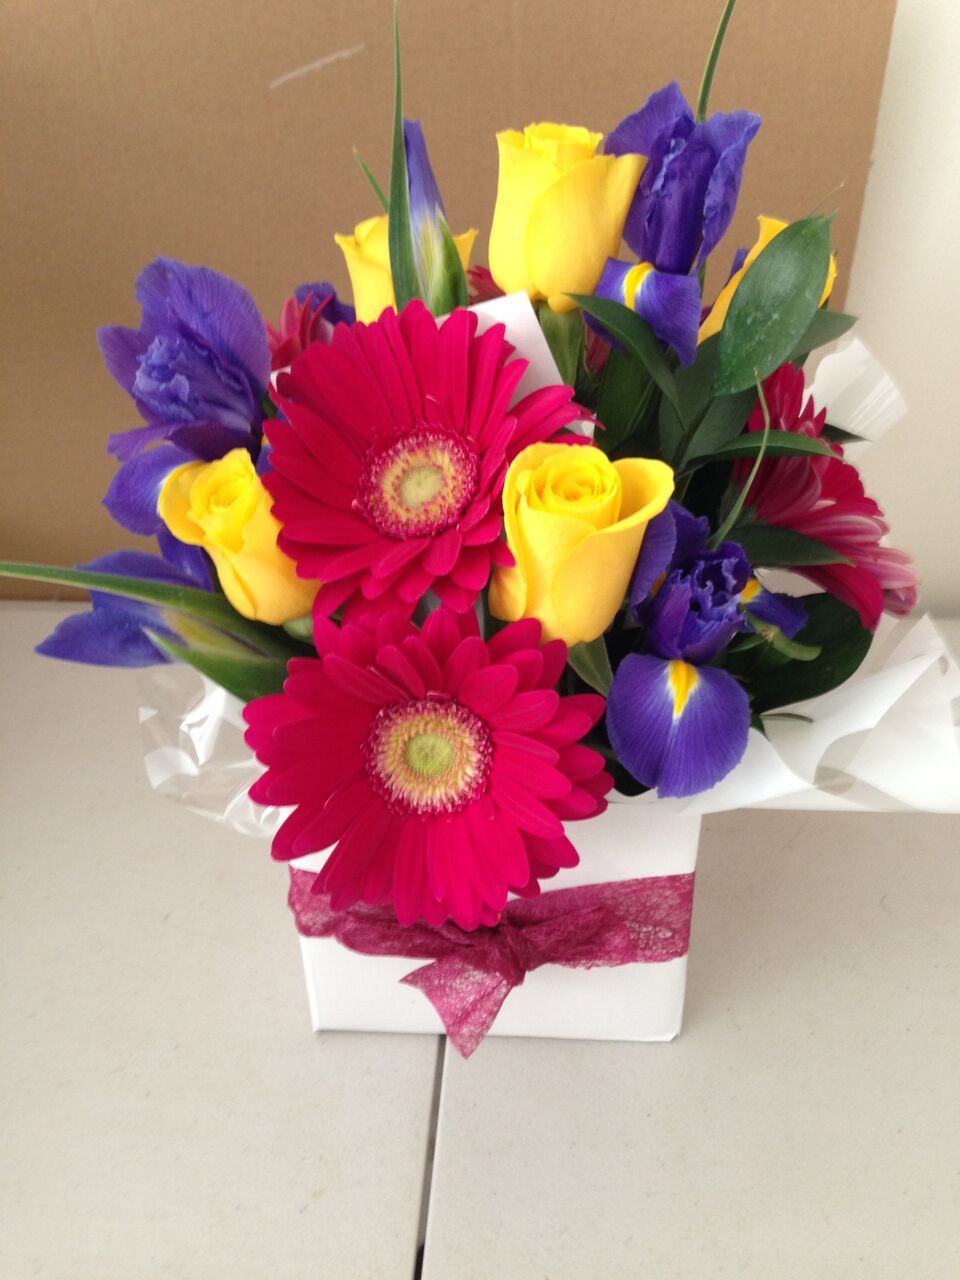 One of our most popular boxed arrangements is 'Making